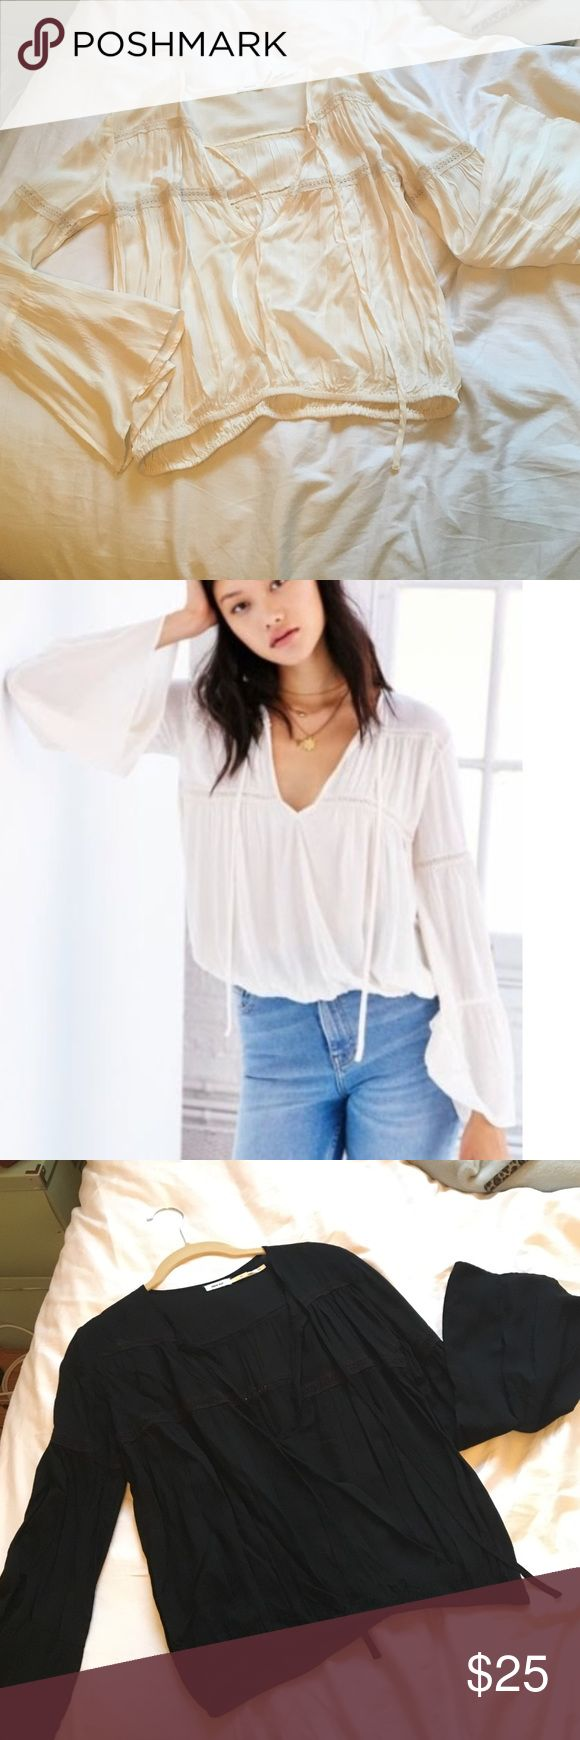 Urban Outfitters Peasant Blouse UO white peasant blouse - belle sleeves and cute embroidery details - I have one in black and one in white! Urban Outfitters Tops Blouses